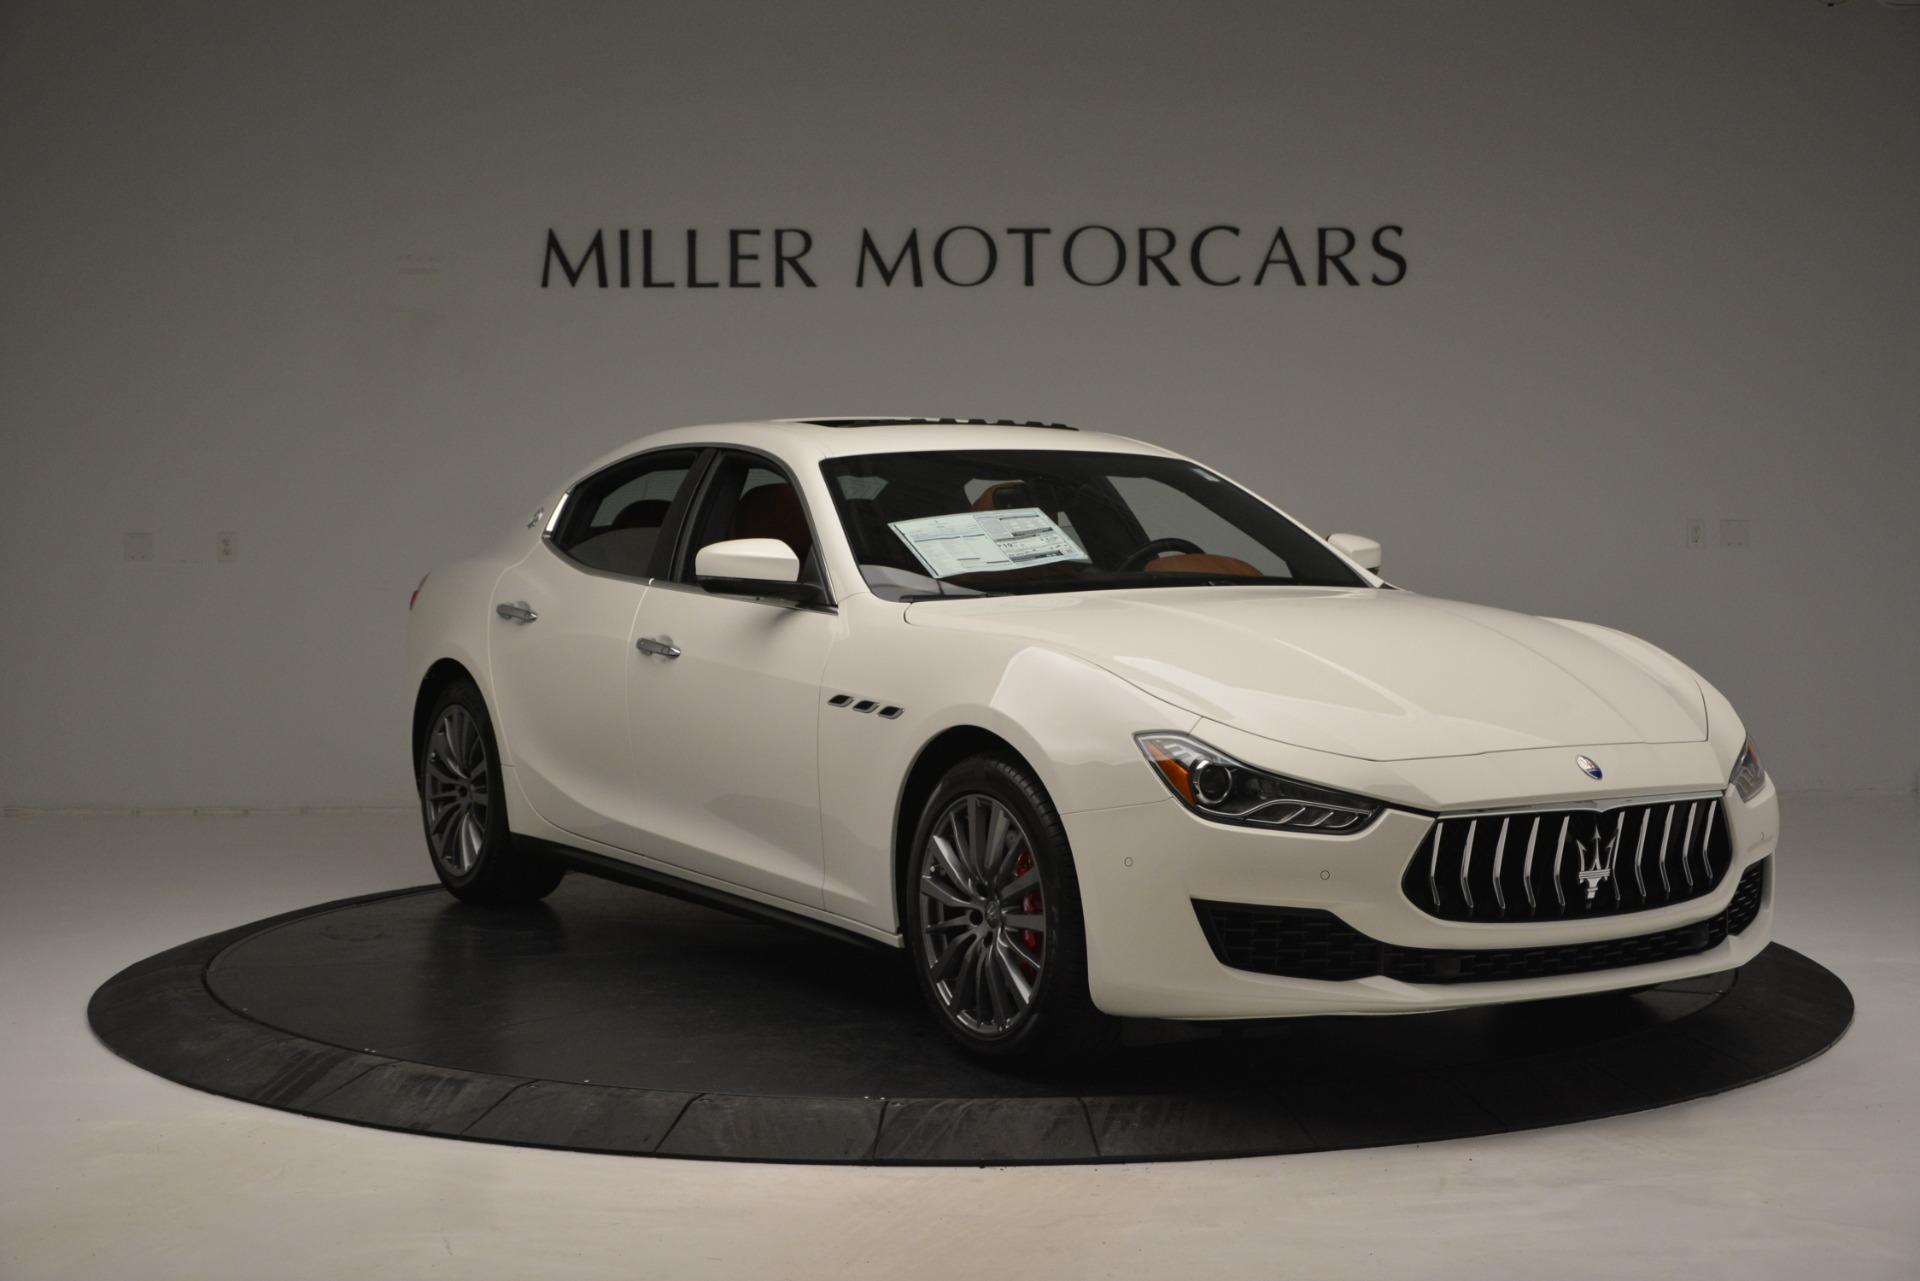 New 2019 Maserati Ghibli S Q4 For Sale In Greenwich, CT 2795_p14